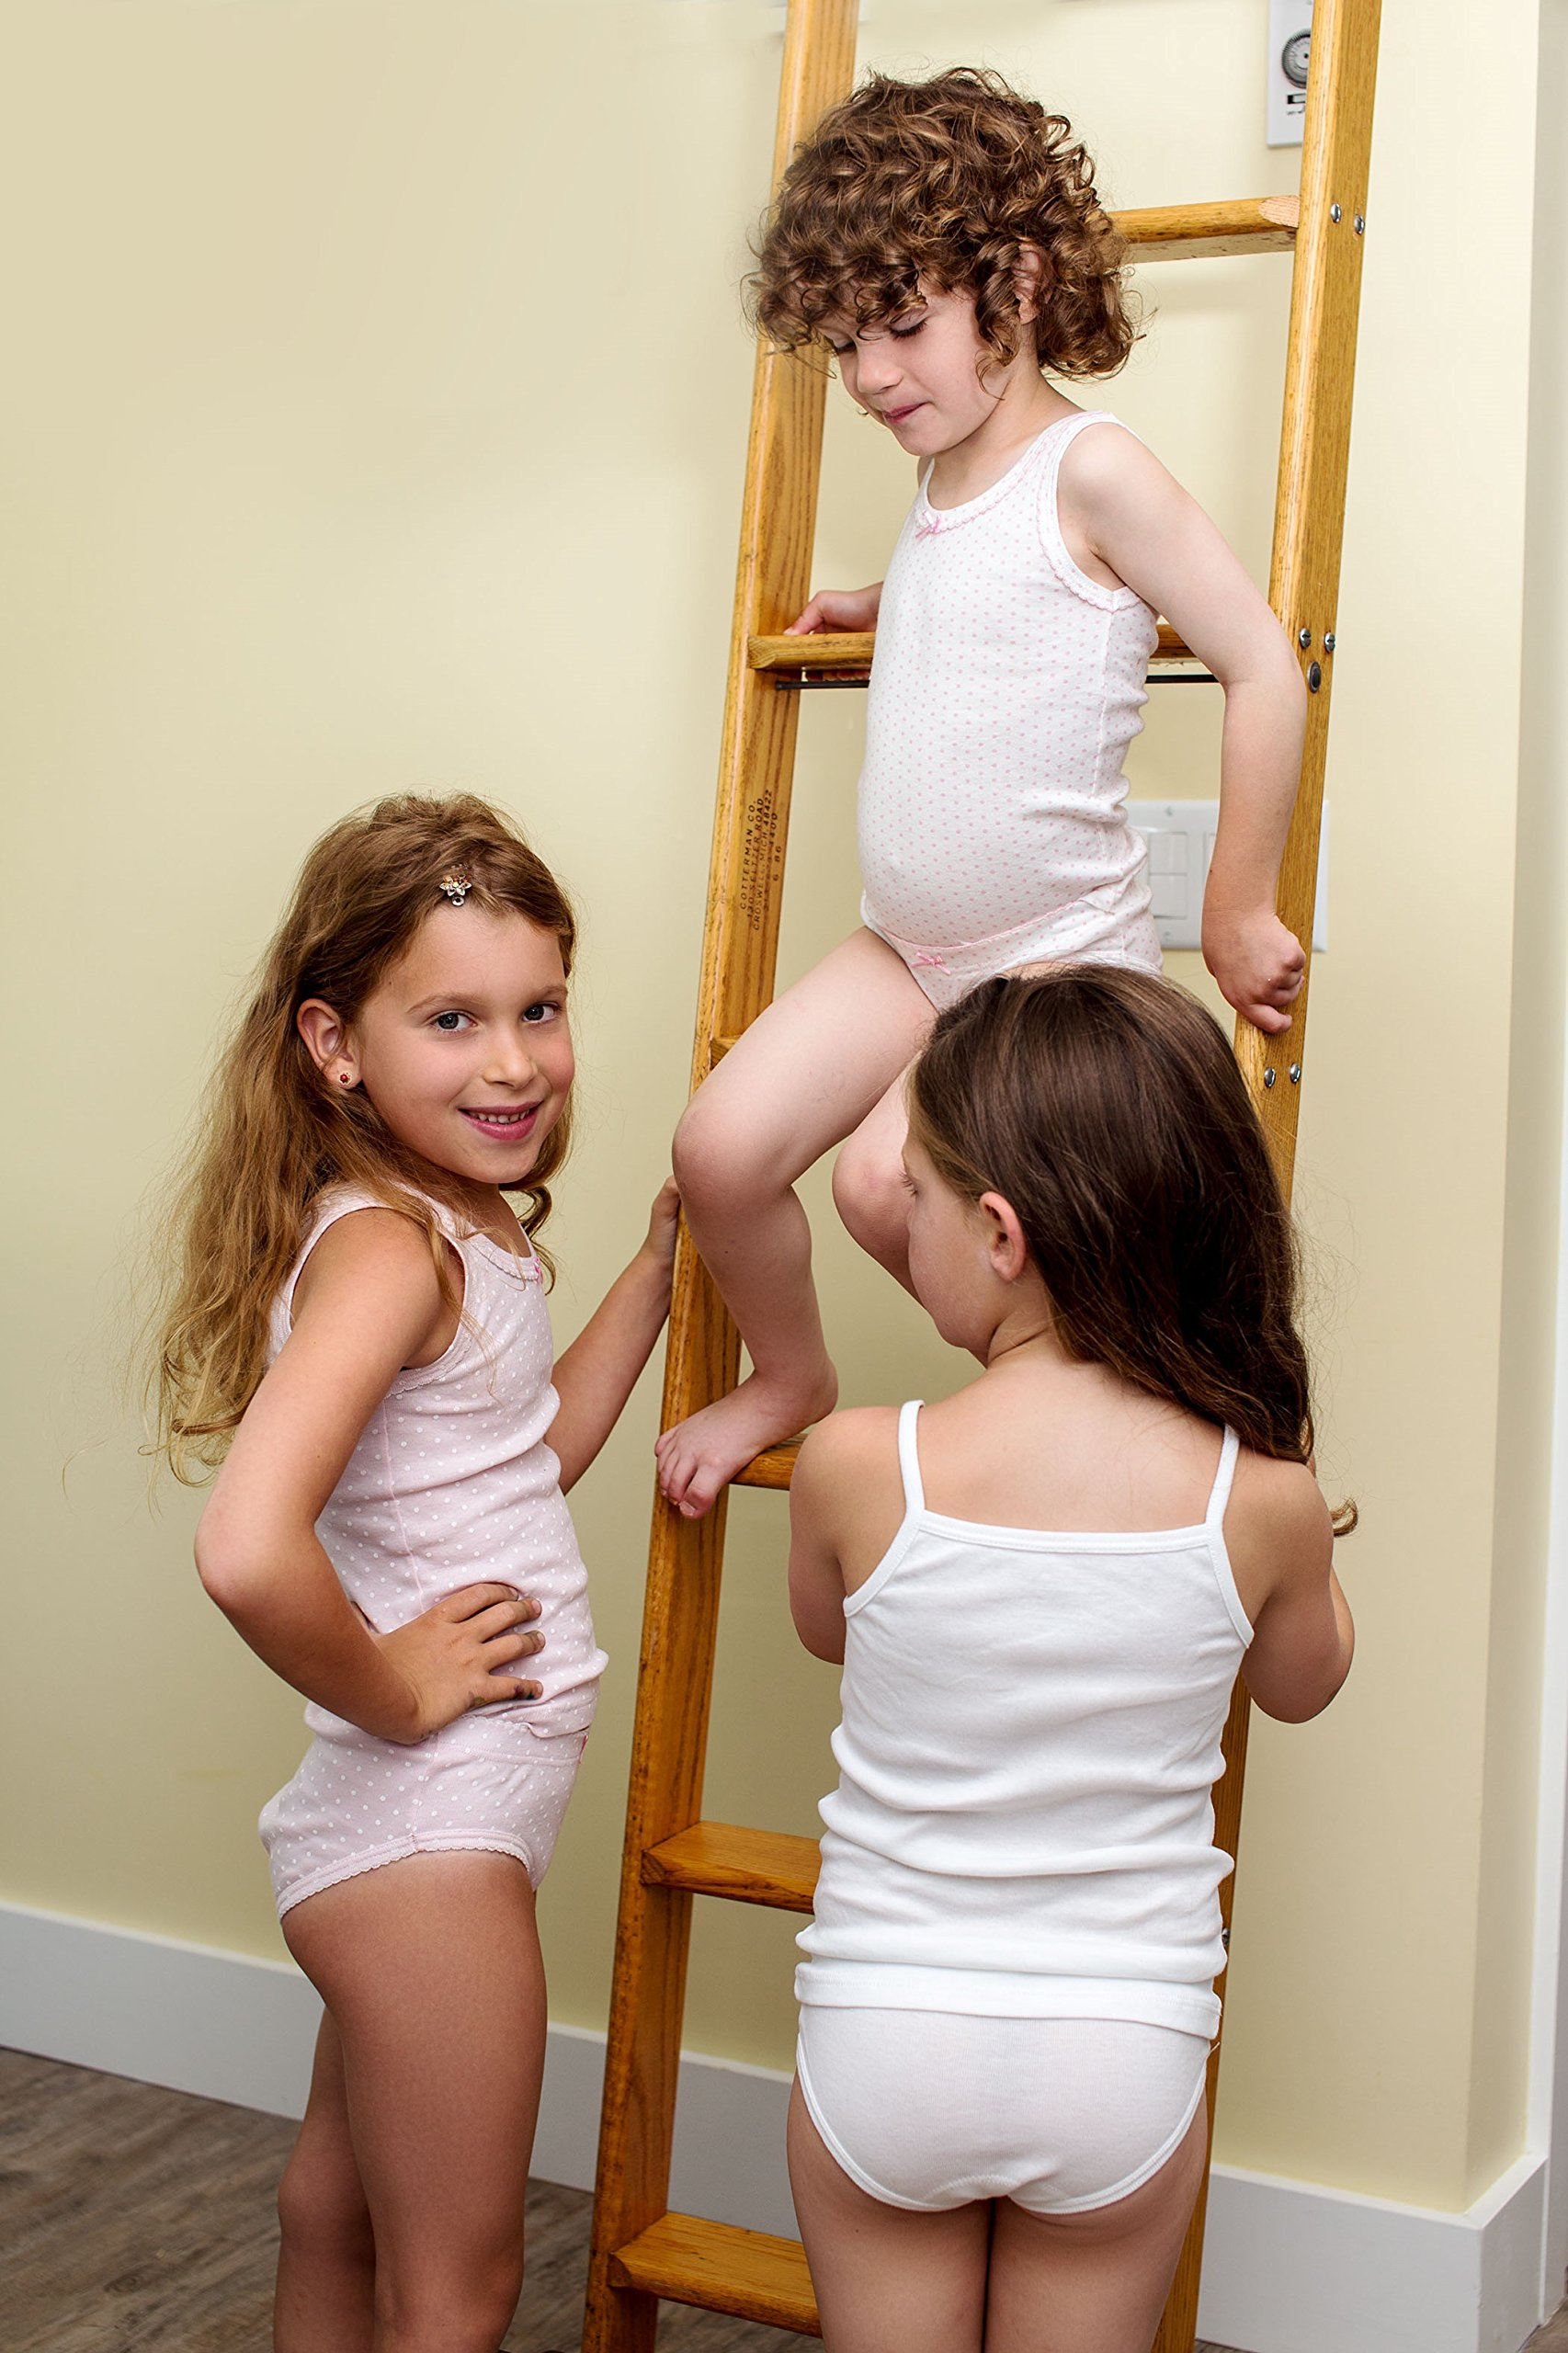 Amoureux Bebe Fine Lace Camisole Undershirts For Toddlers & Girls- Extra Soft Turkish Cotton Tank Tops- Solid White- Solid White, Size 4-5 (3 Pack) by Amoureux Bebe (Image #5)